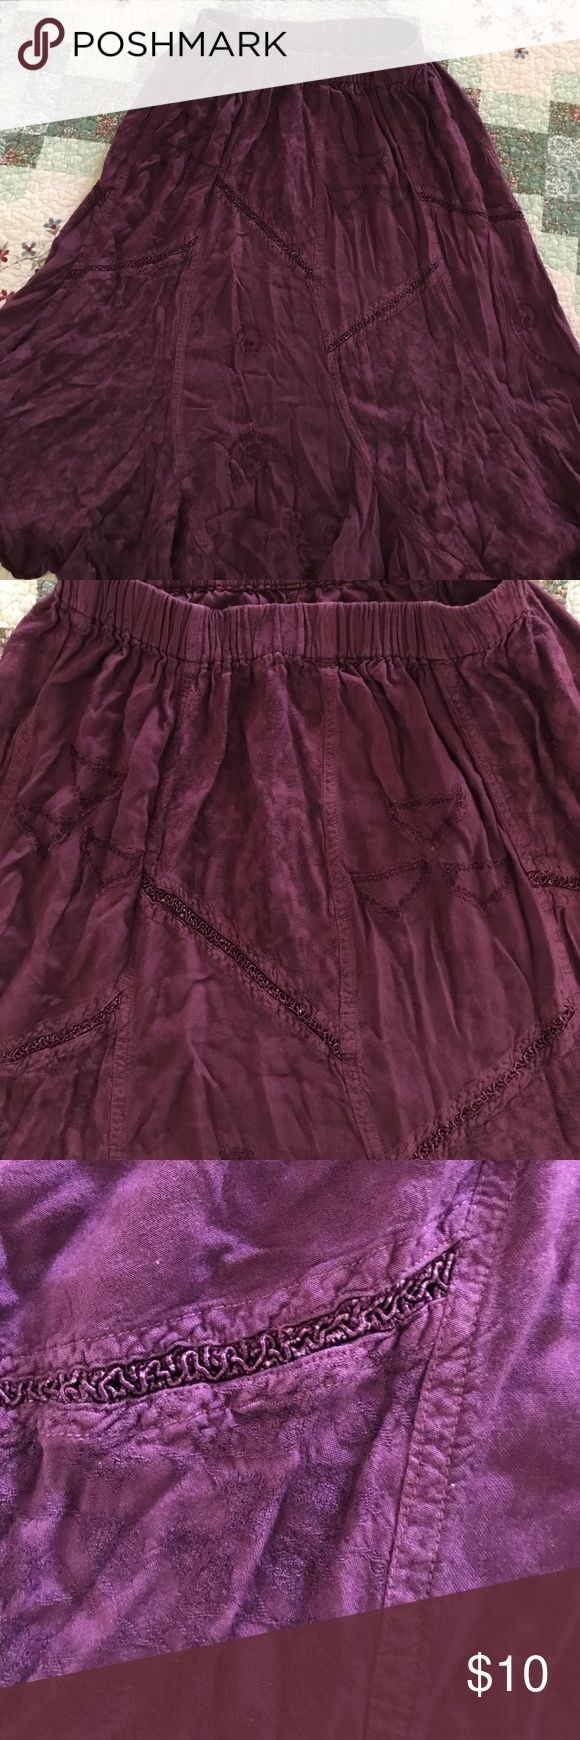 Southwestern Skirt Purple skirt, polyester southwestern skirt. Great with cowboy  boots. No Tag Skirts Midi